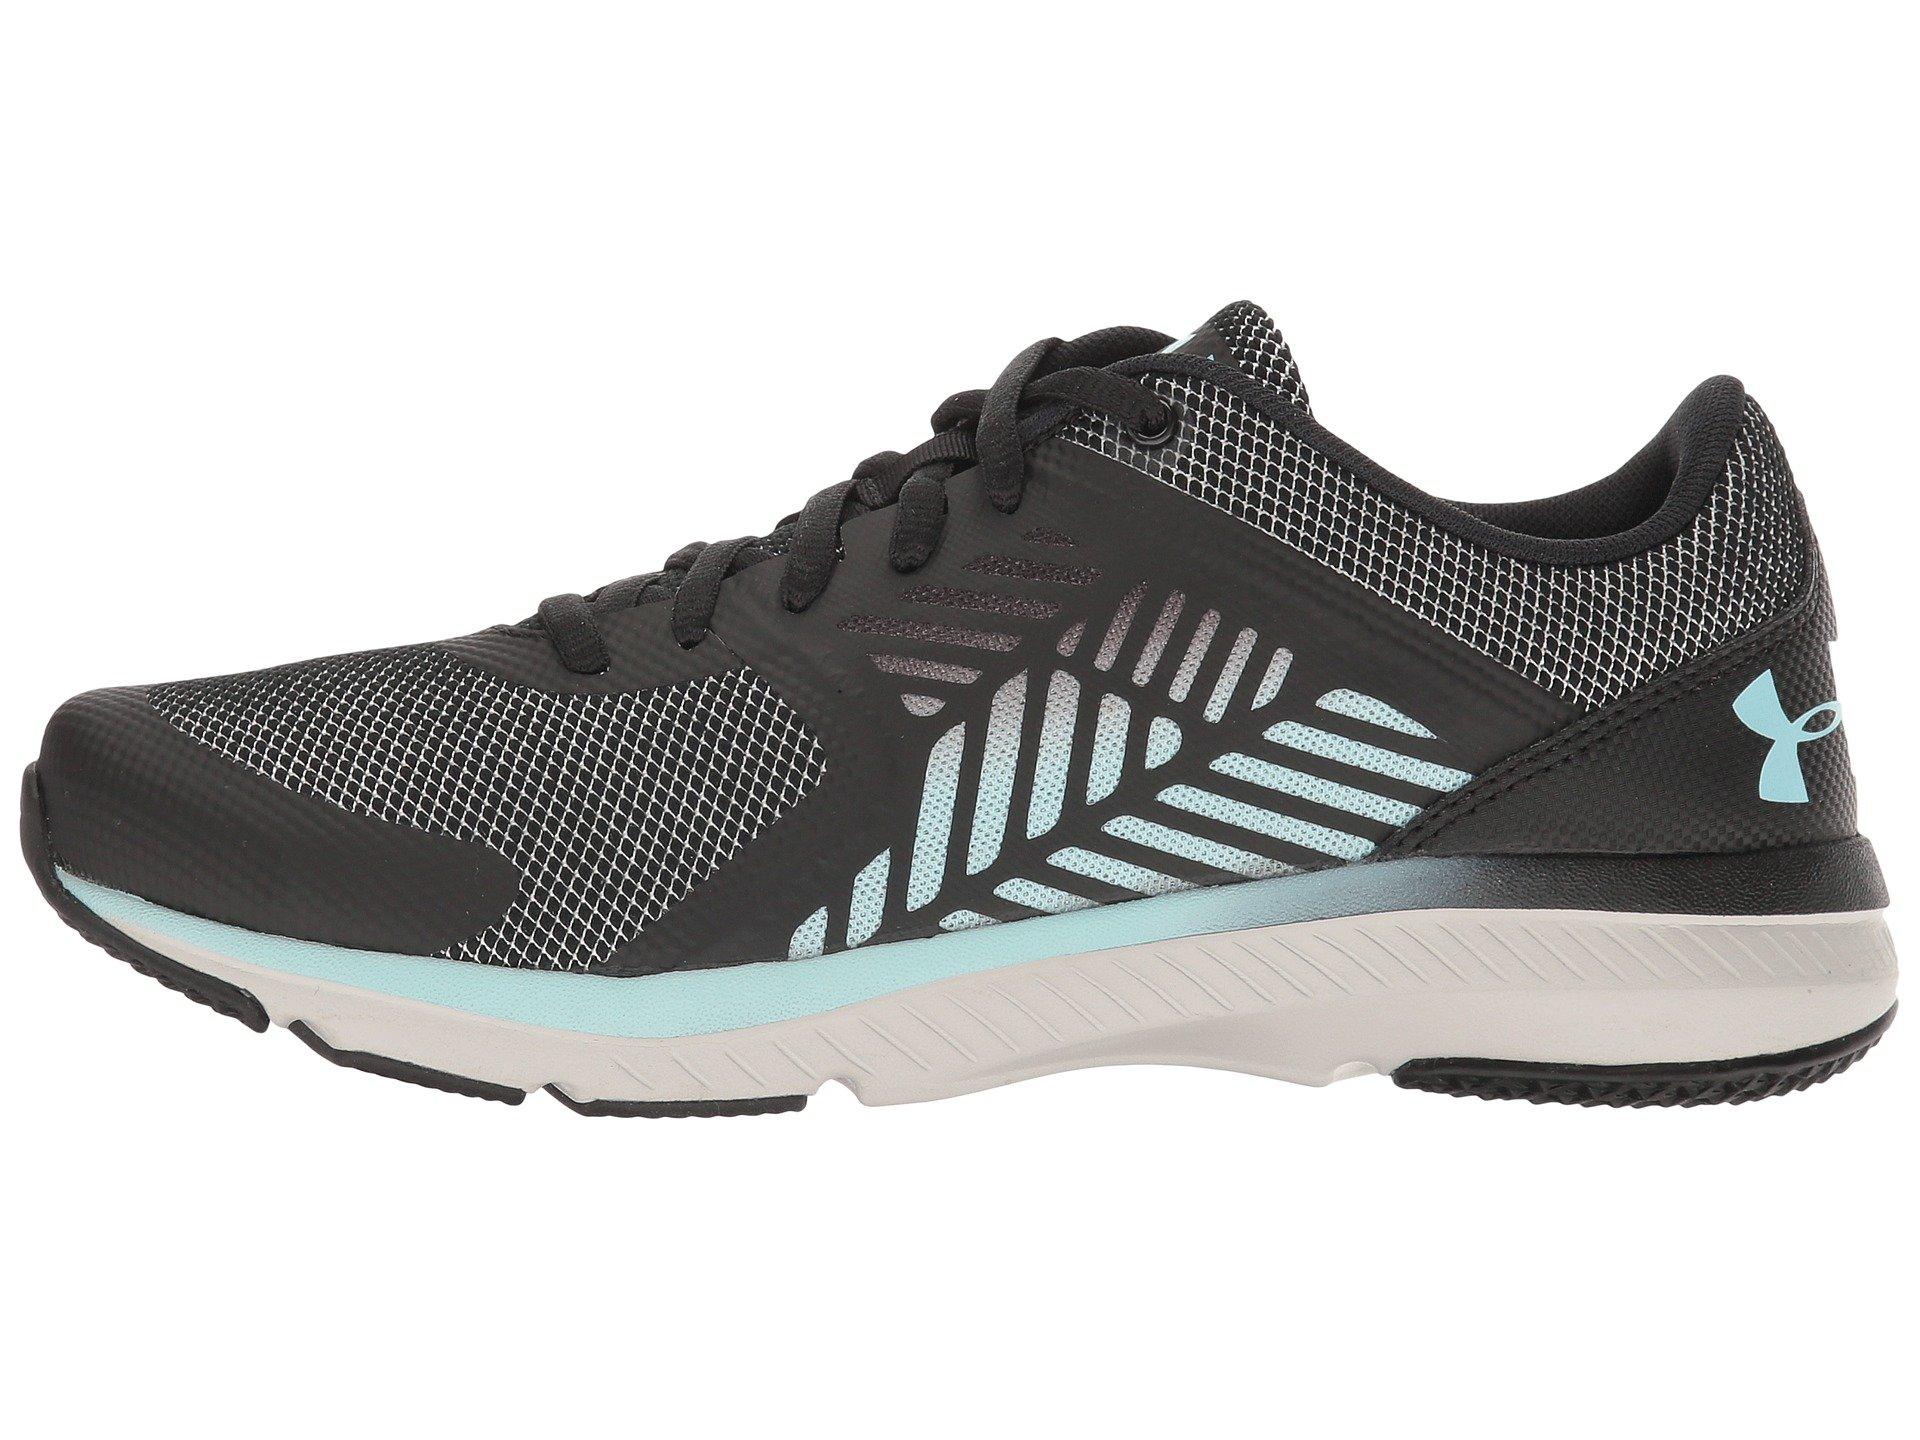 Under Armour Micro G Press Tr Women S Training Shoes